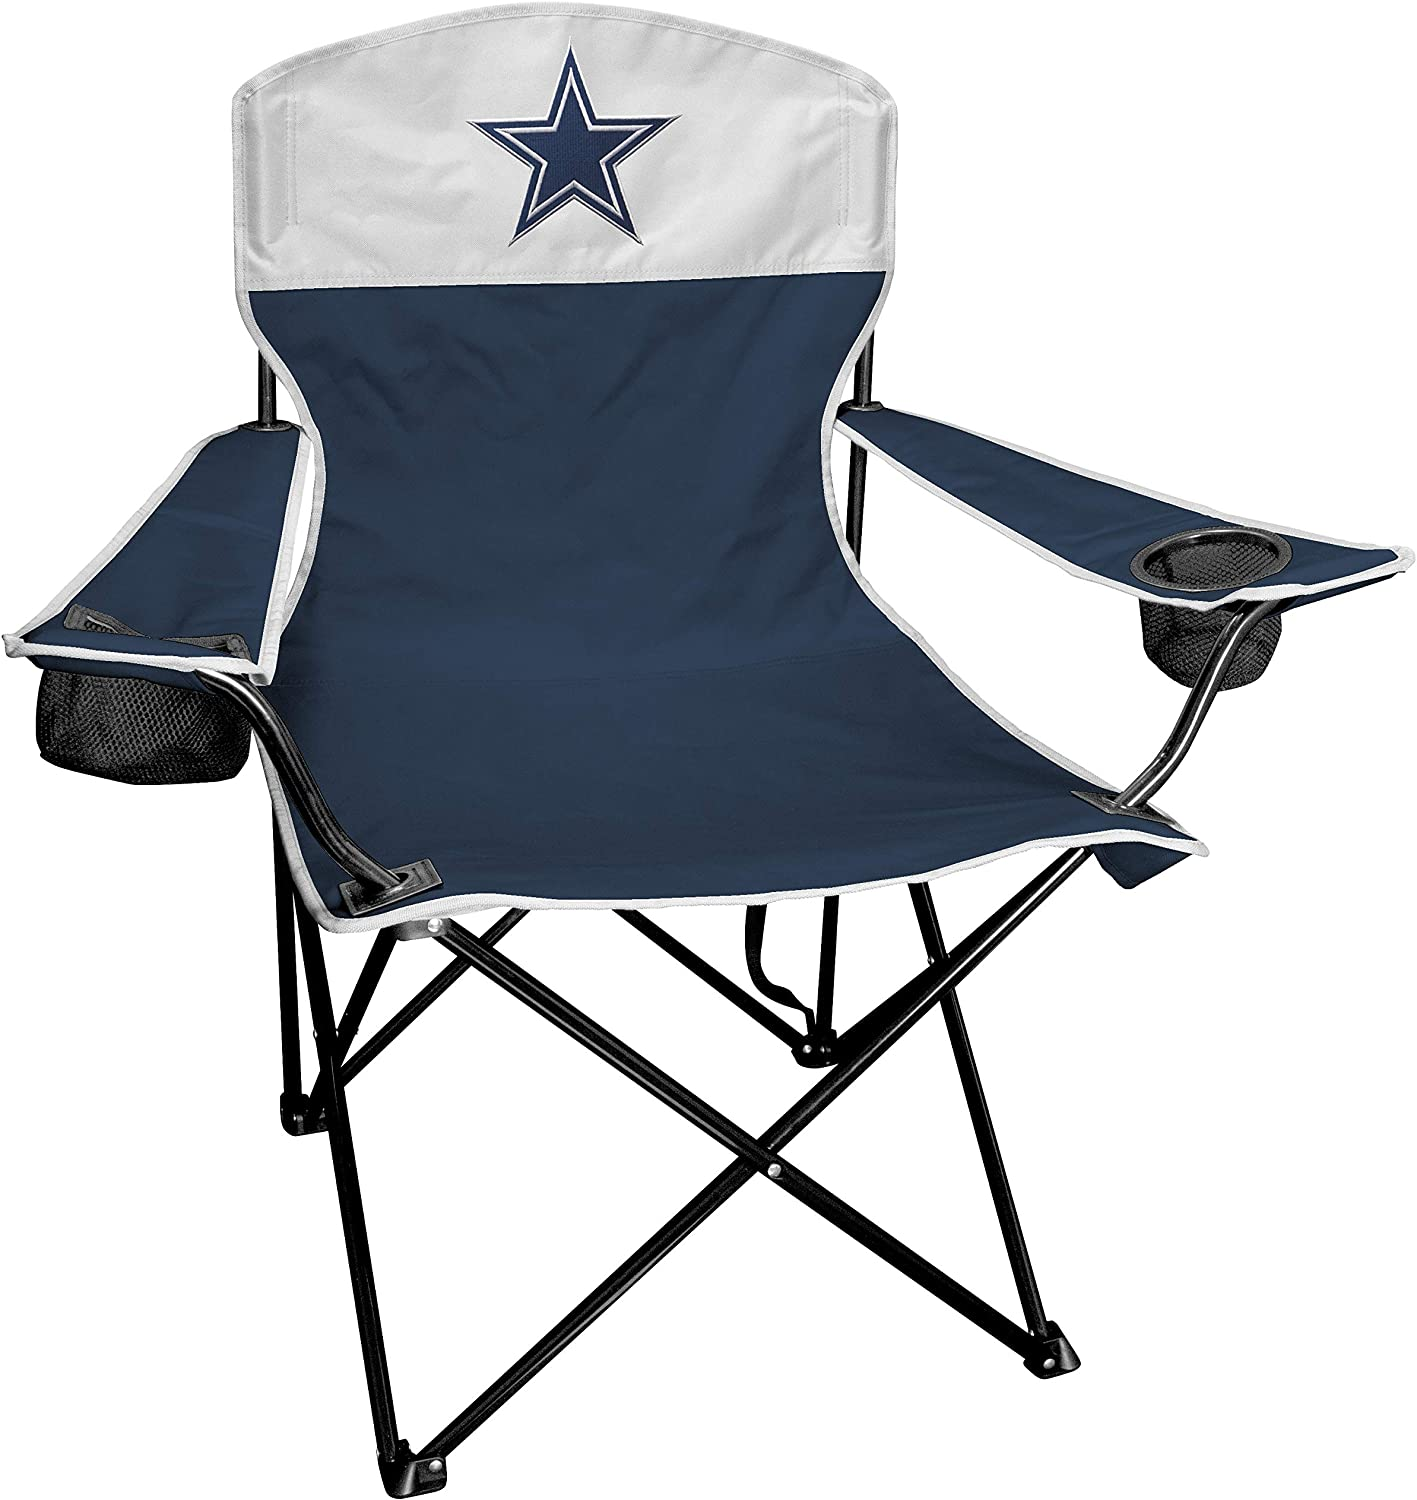 NFL XL Lineman Tailgate and Camping Folding Chair ALL TEAM OPTIONS